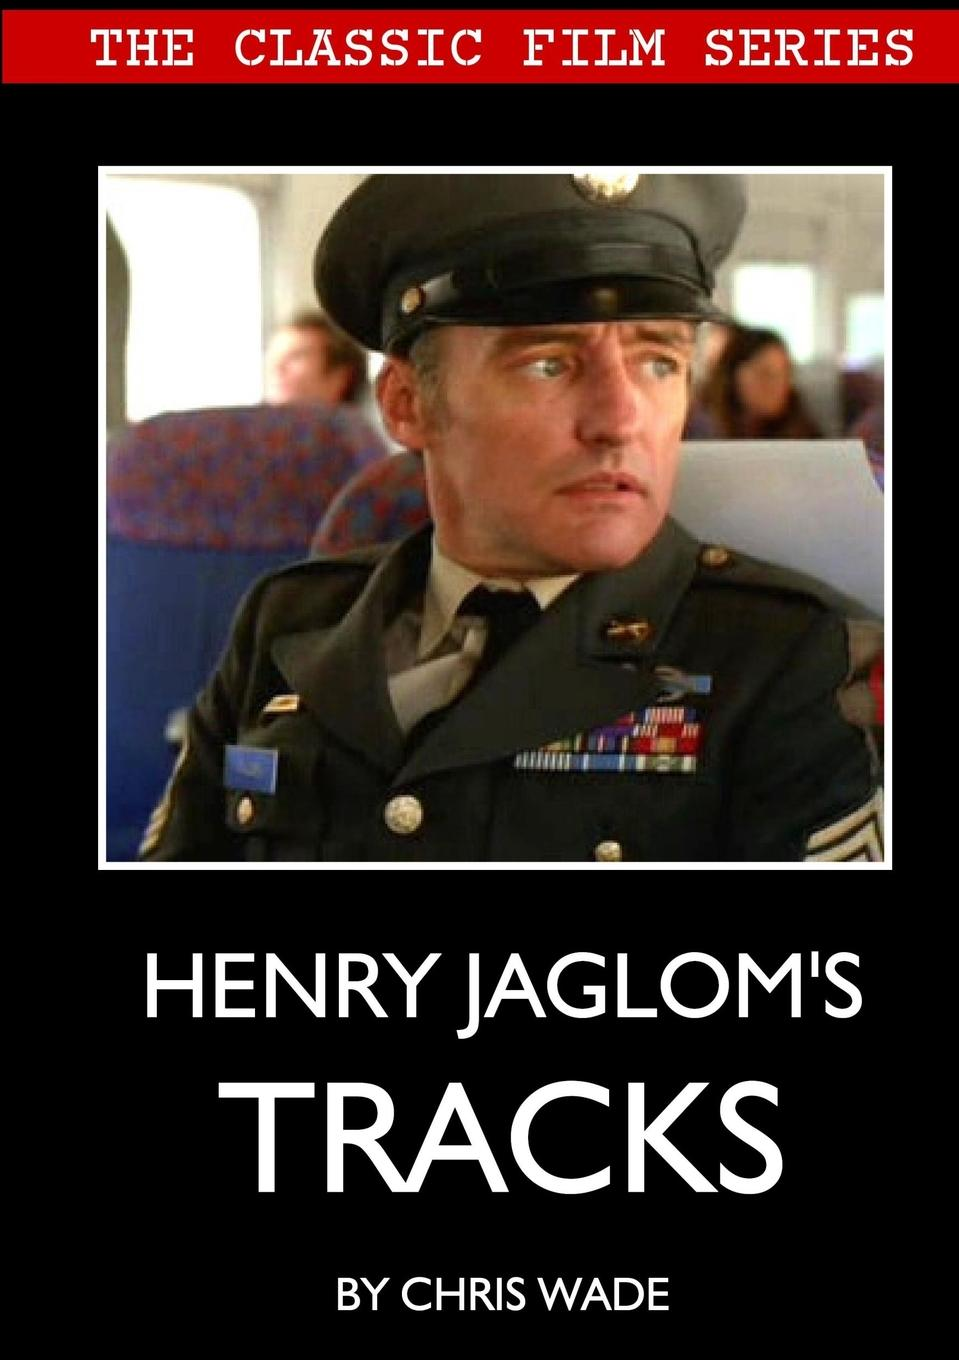 chris wade Classic Film Series. Henry Jaglom.s Tracks a movie and a book